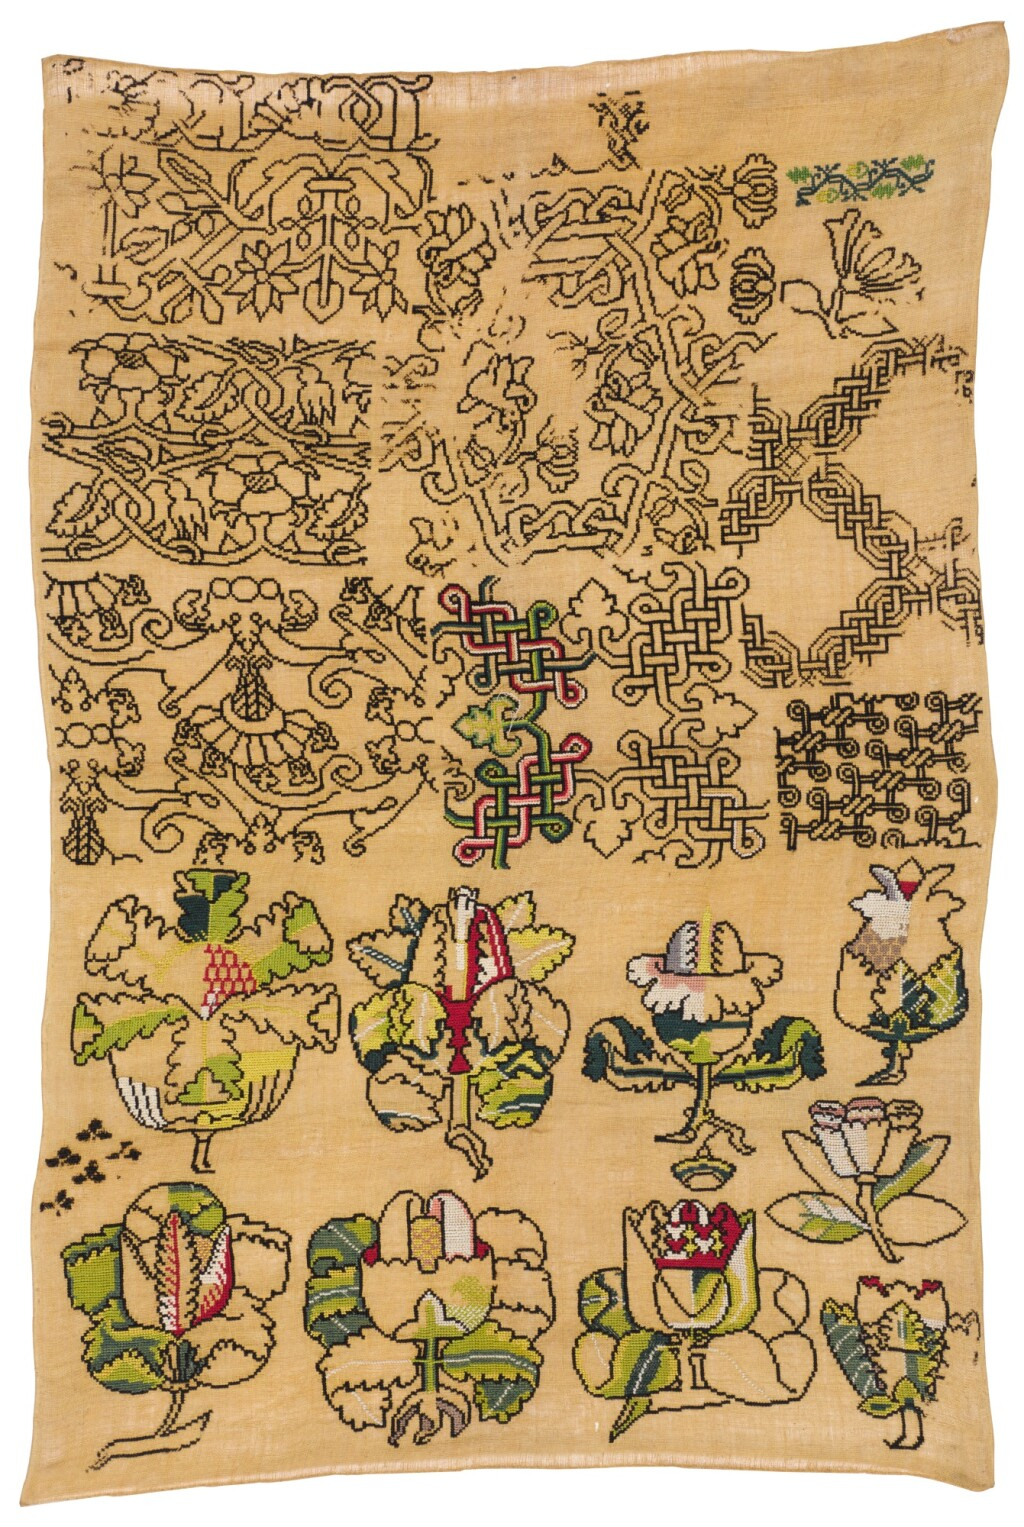 A NEEDLEWORK 'SPOT MOTIF' SAMPLER, ENGLISH, 17TH CENTURY